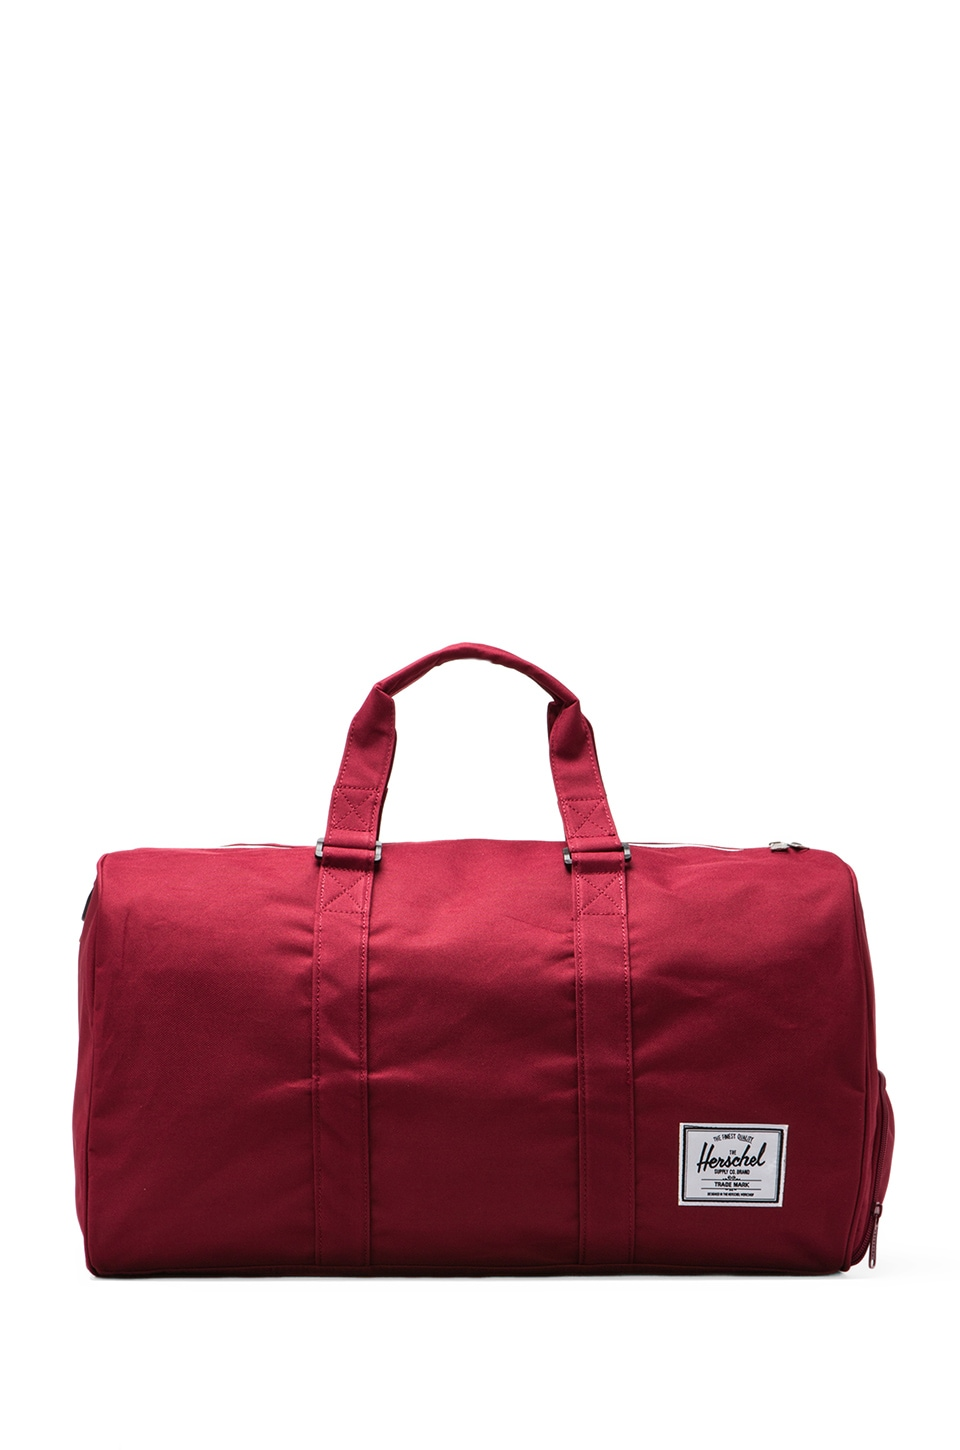 Herschel Supply Co. Novel Duffle in Burgundy